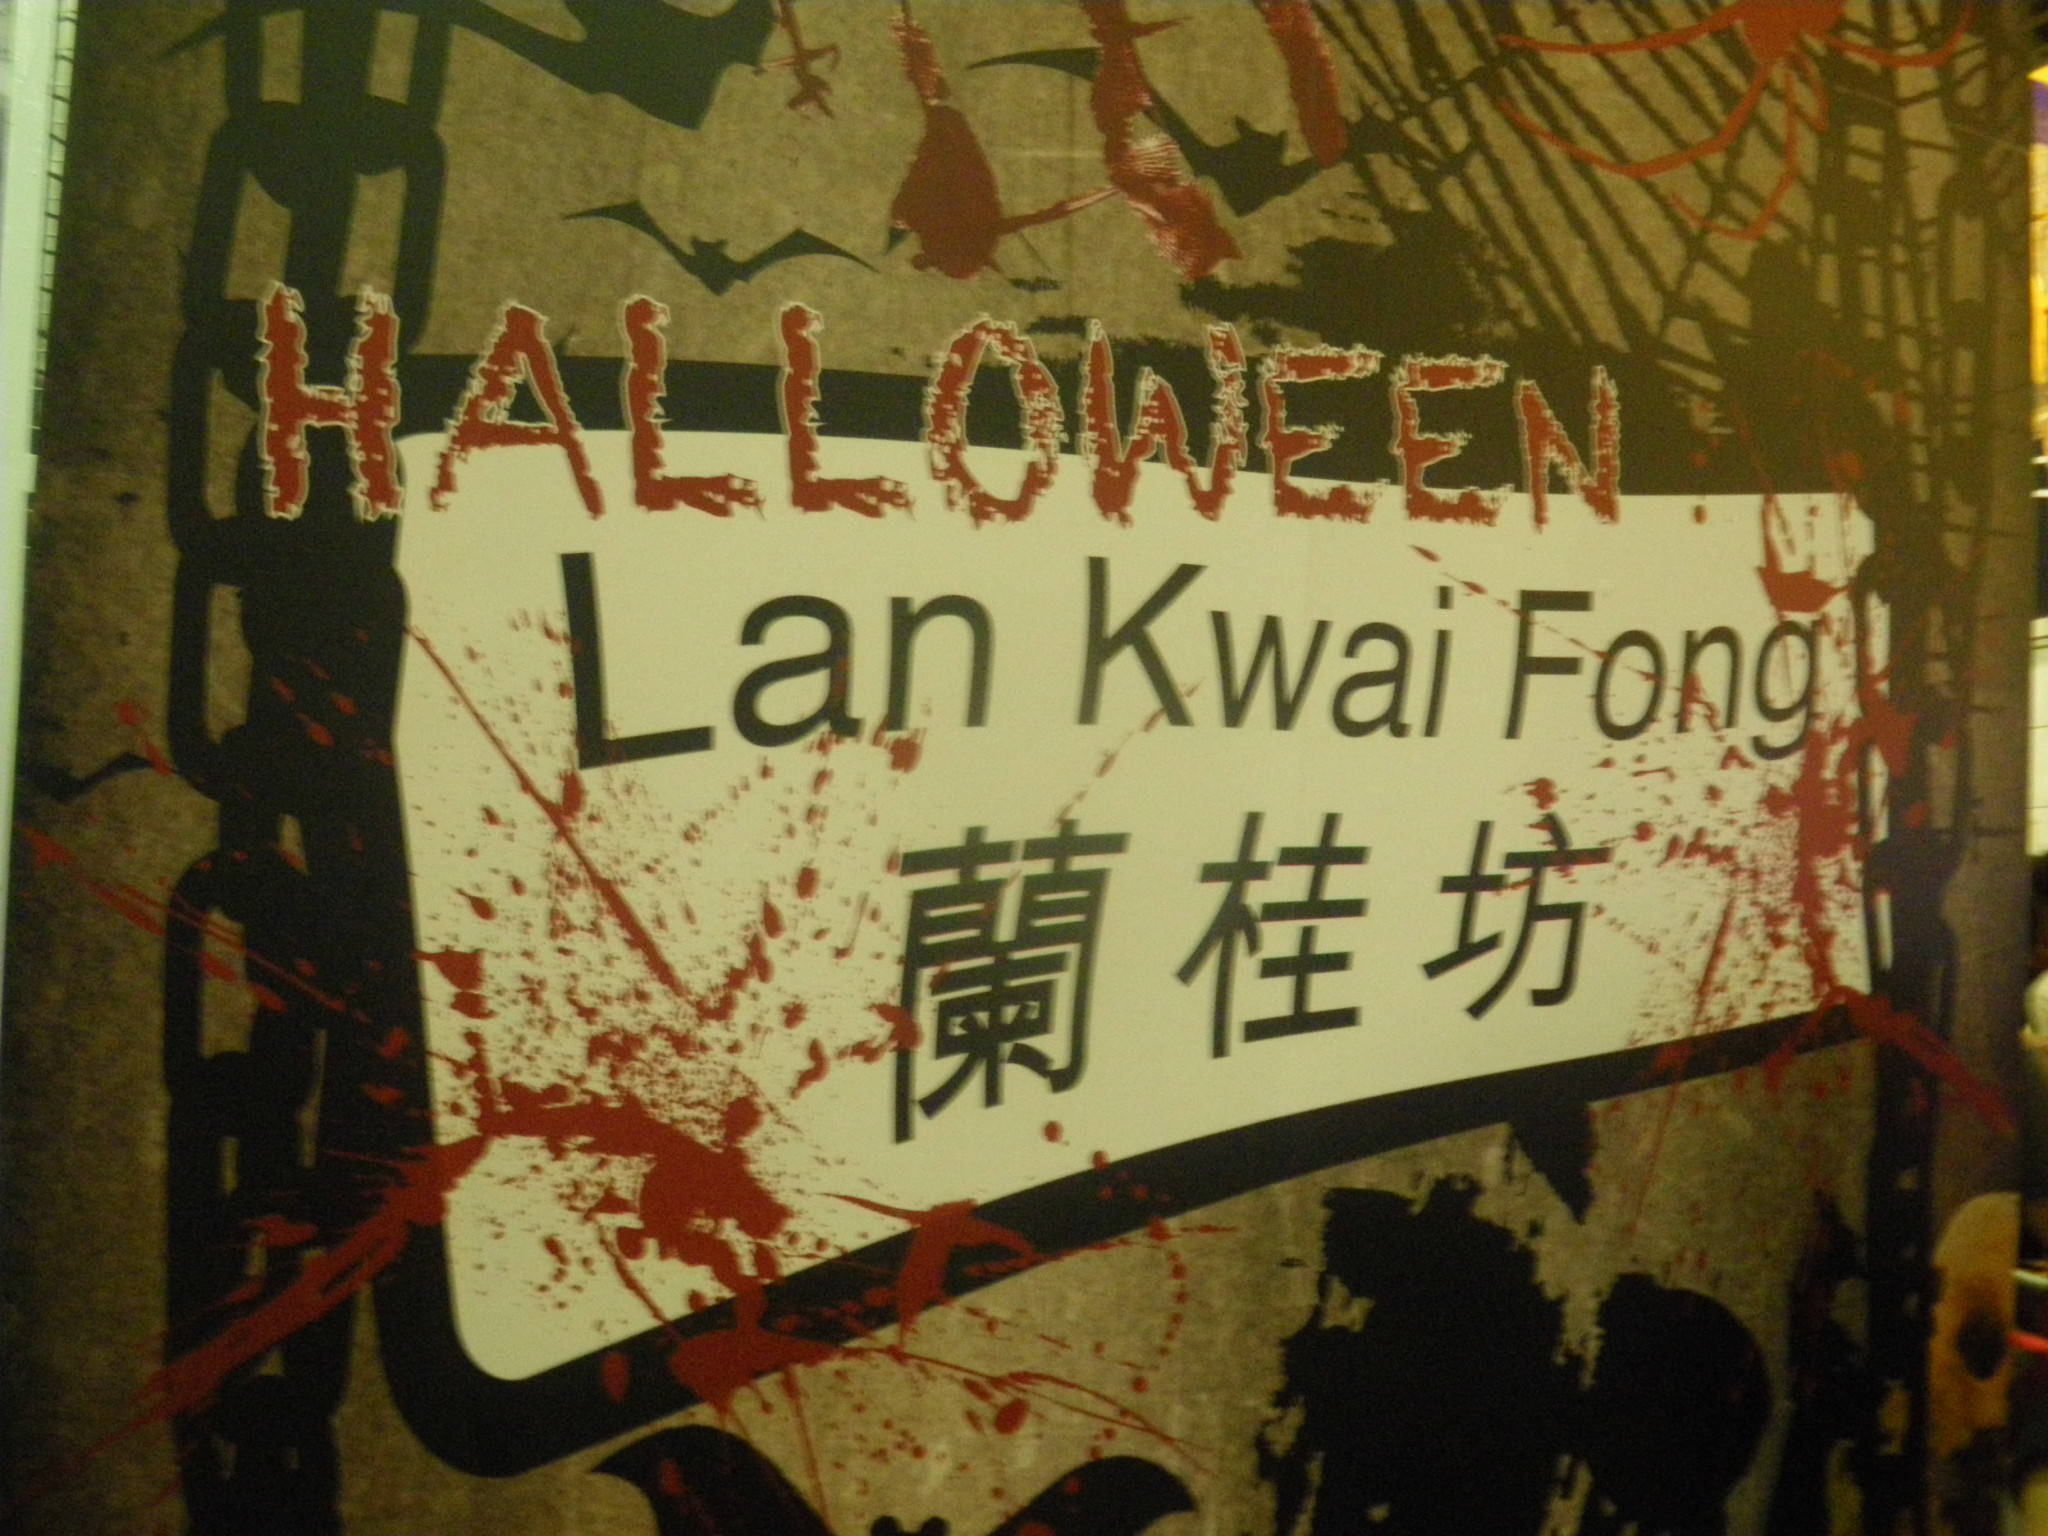 Halloween freak night in Lan Kwai Fong Hong Kong